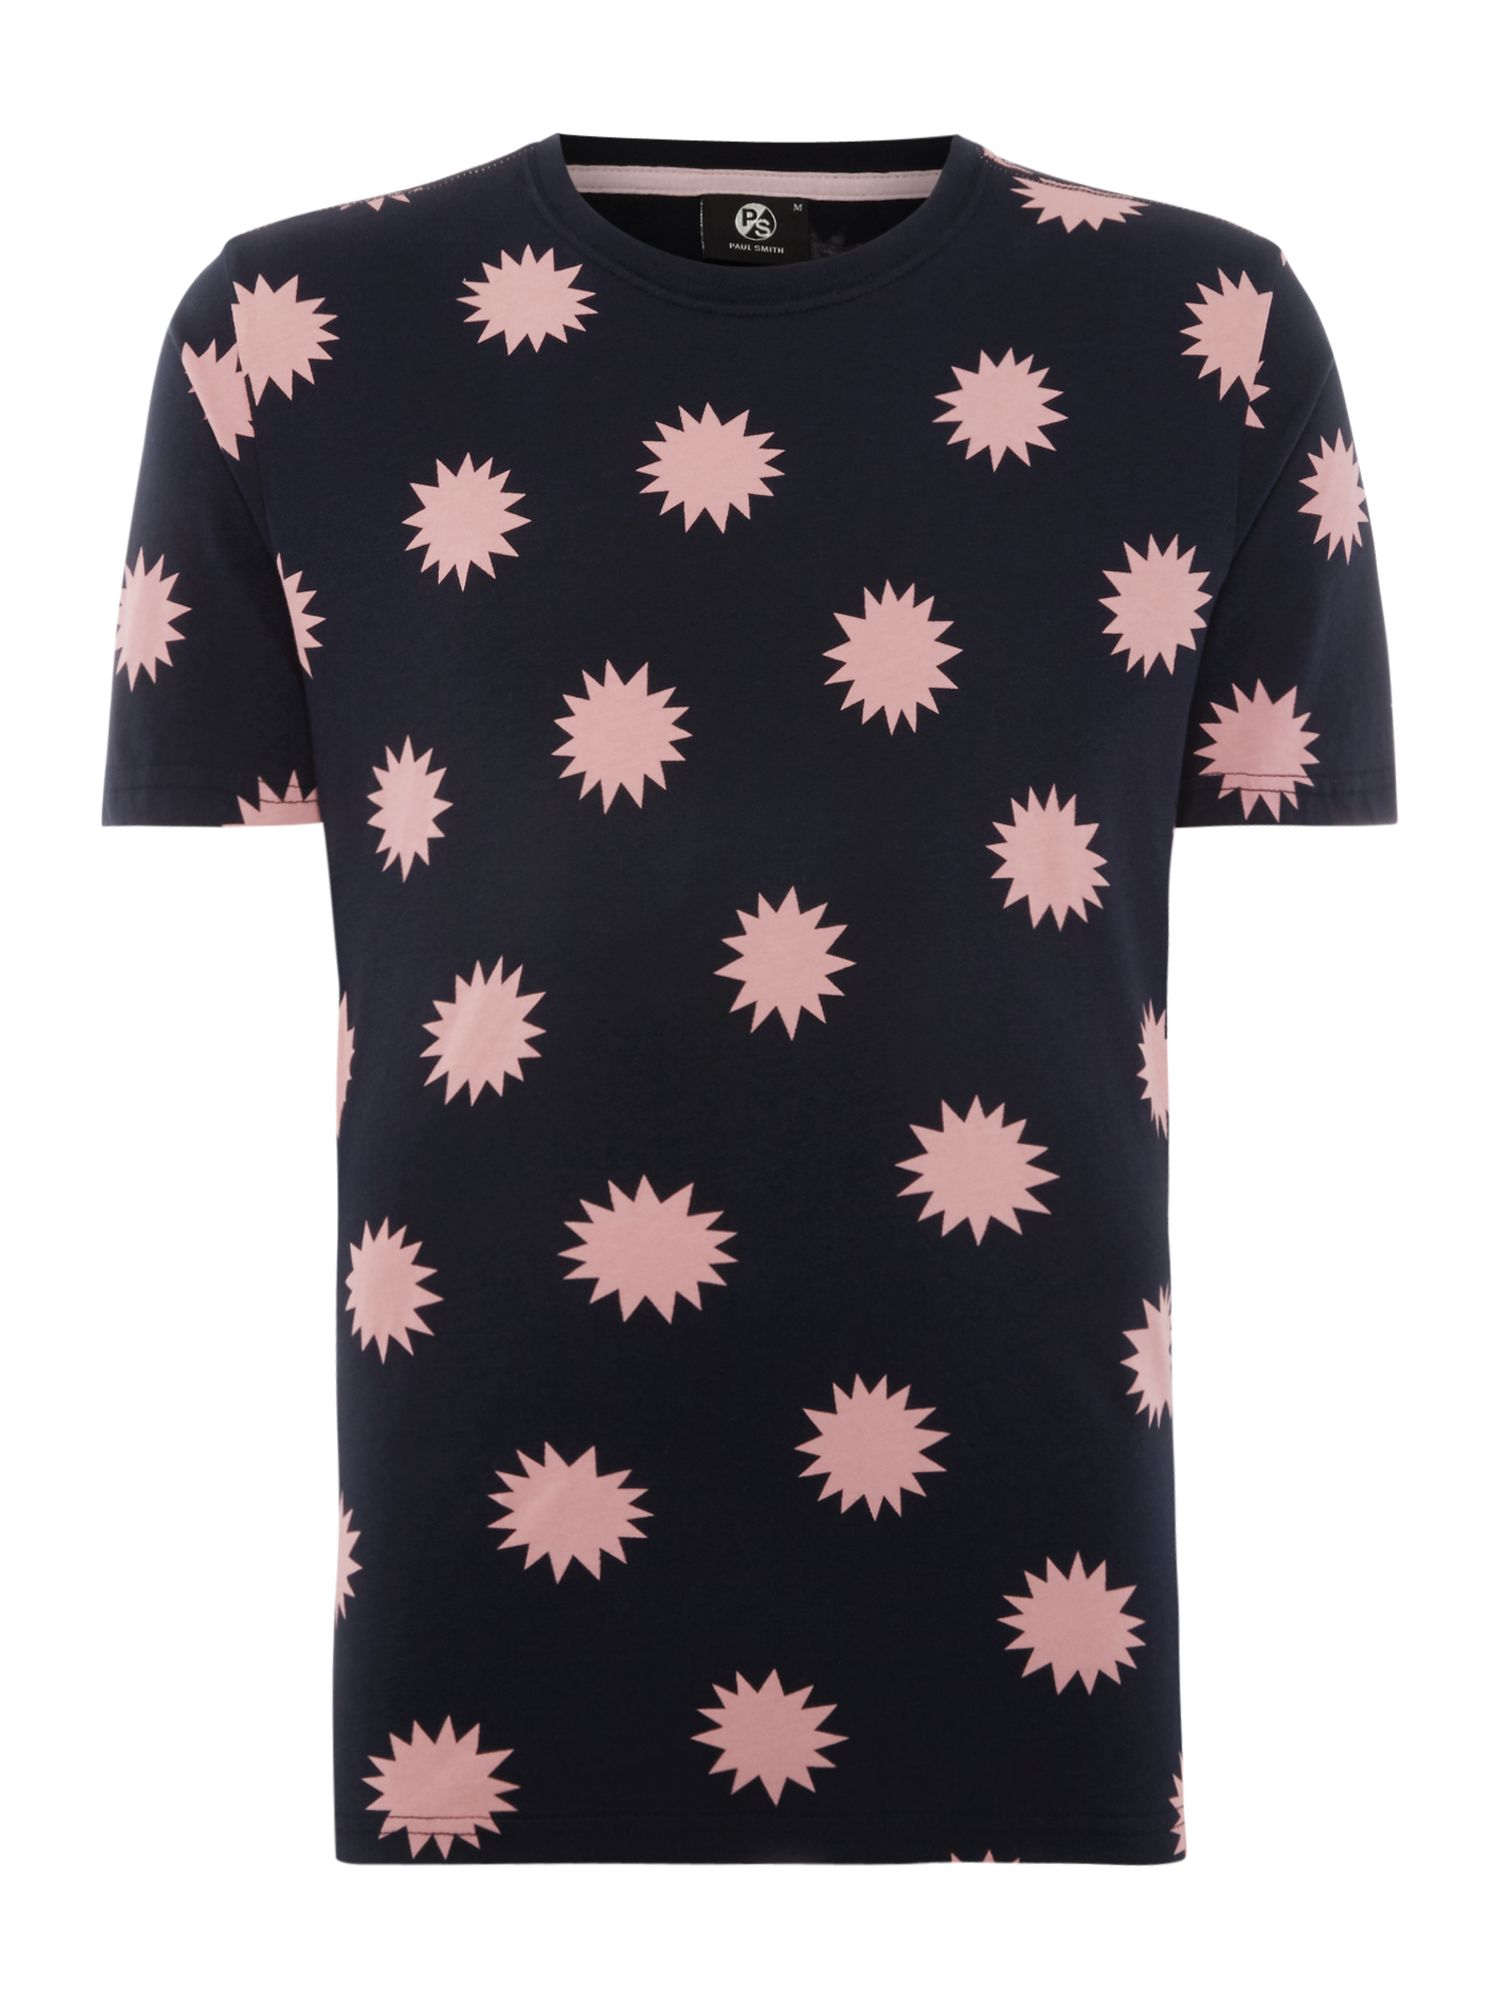 Men's PS By Paul Smith Star Print T-Shirt, Blue